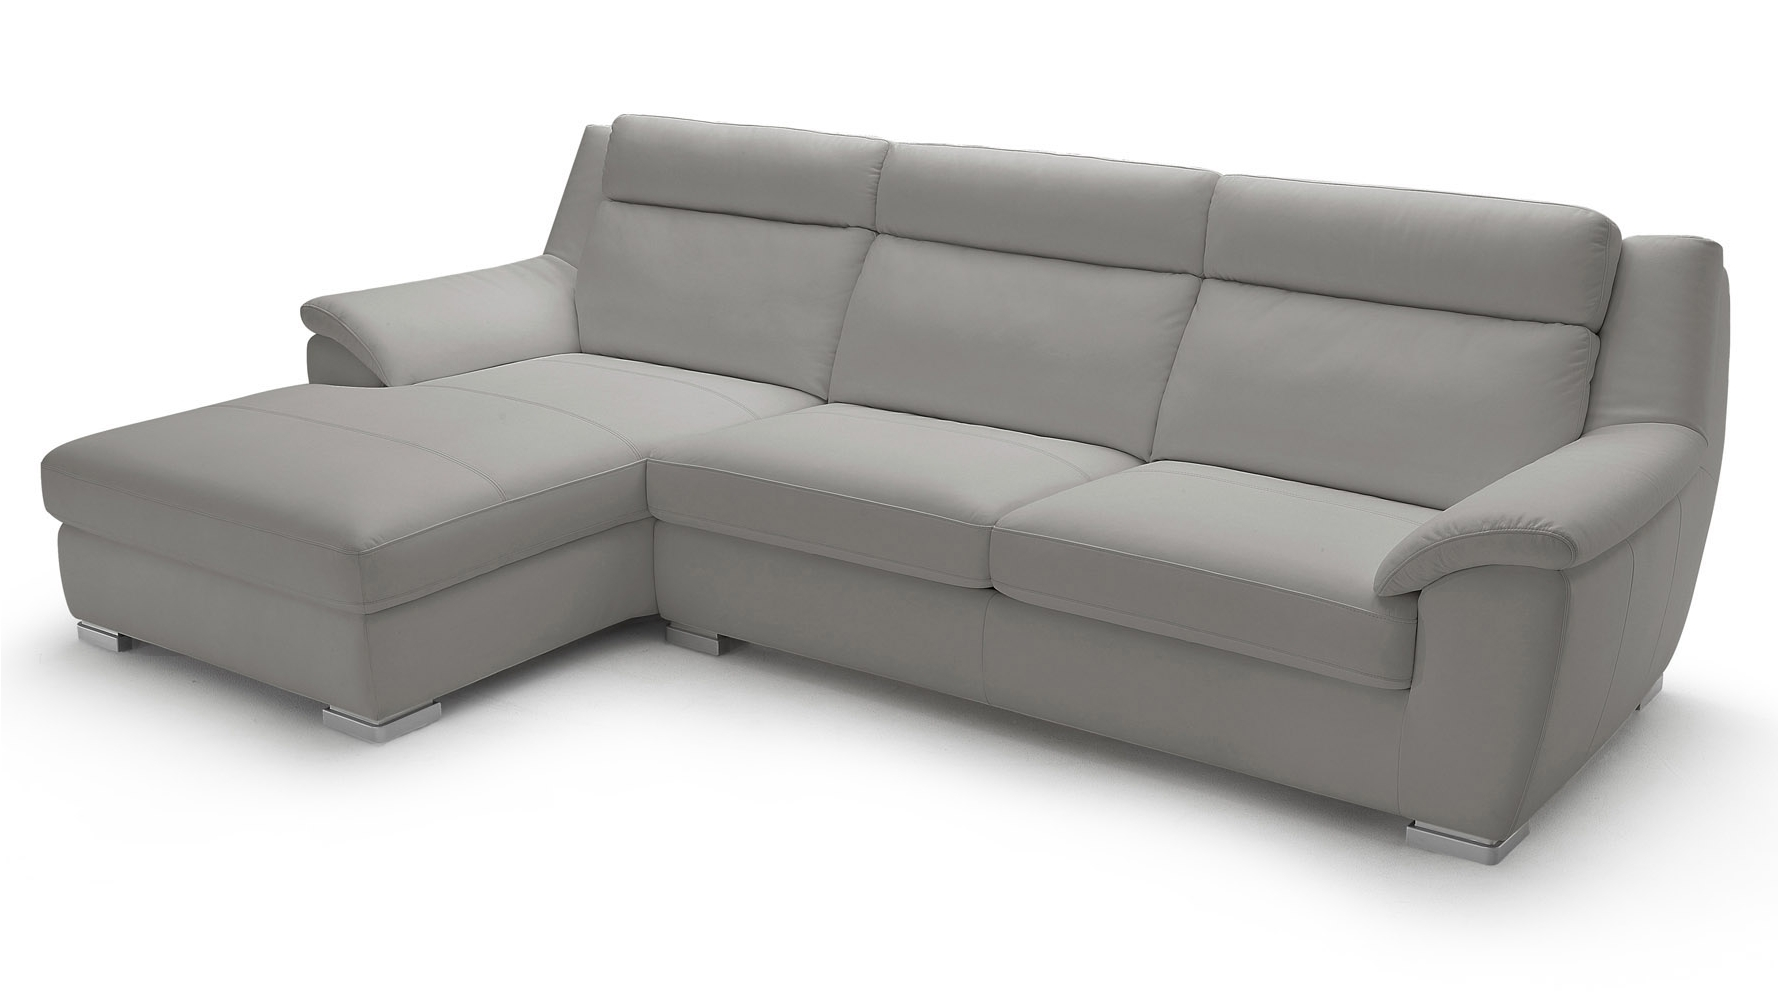 Newest Sleeper Chaise Sofas Pertaining To Manor Light Grey Top Grain Leather Sofa Sleeper Sectional With (View 12 of 15)